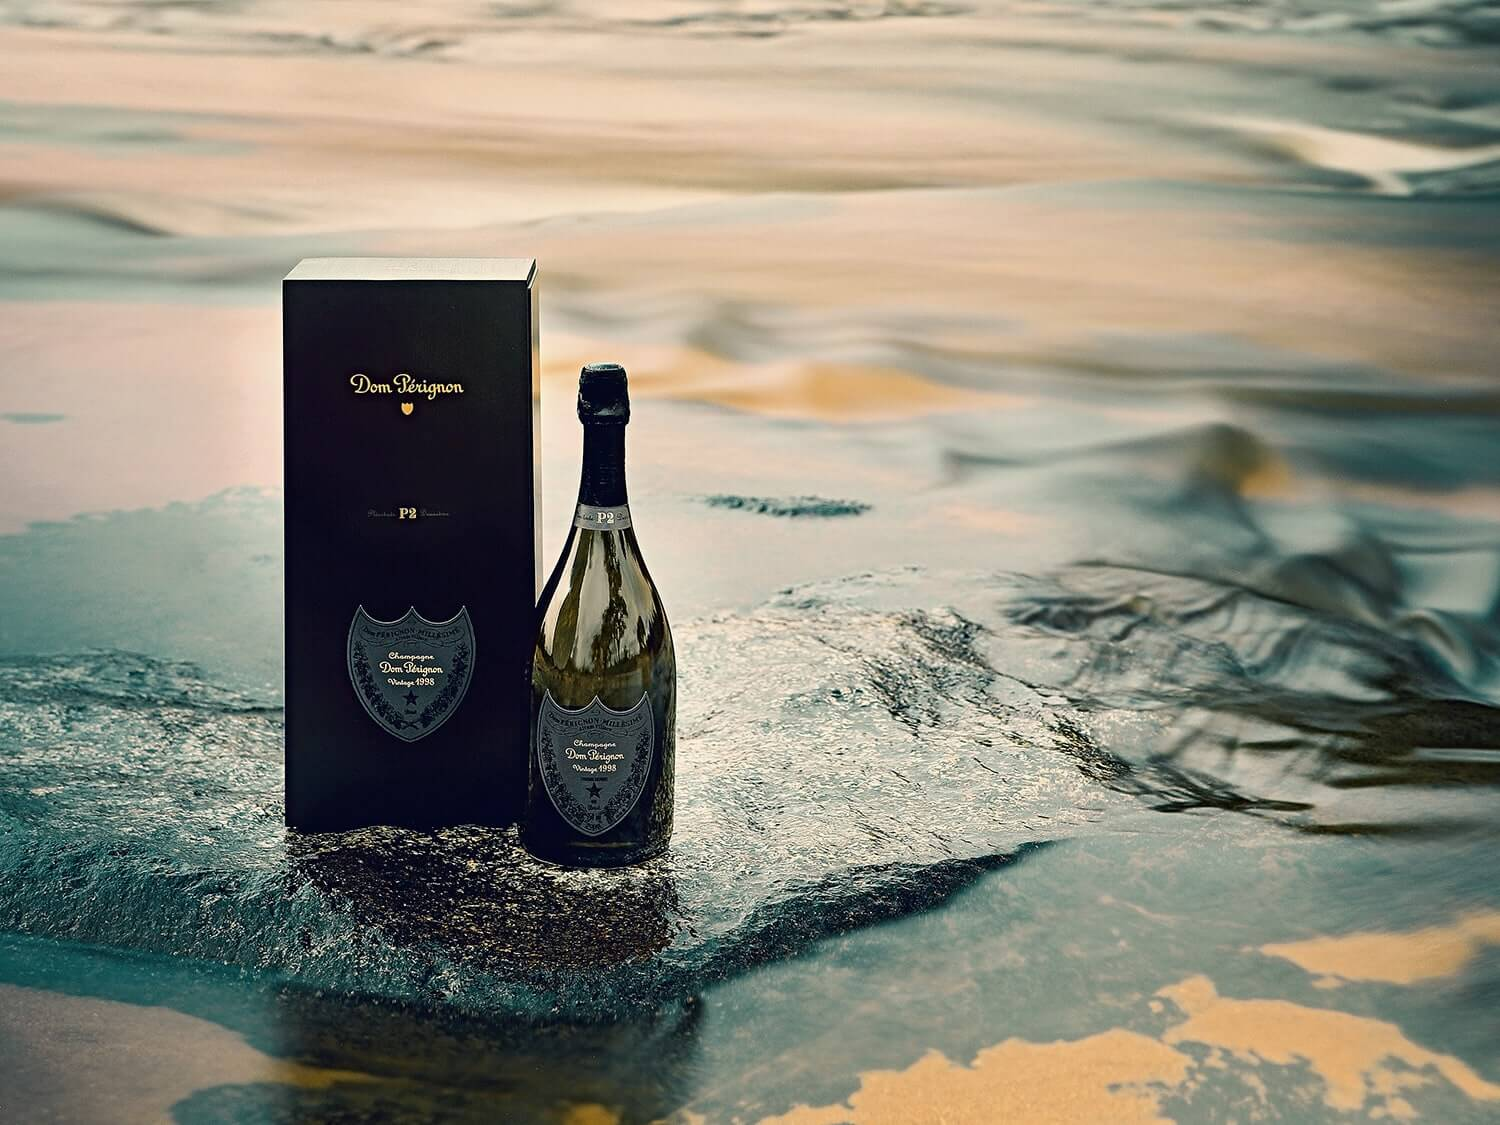 Bottles of Dom Perignon. Photo by Elsa Young.